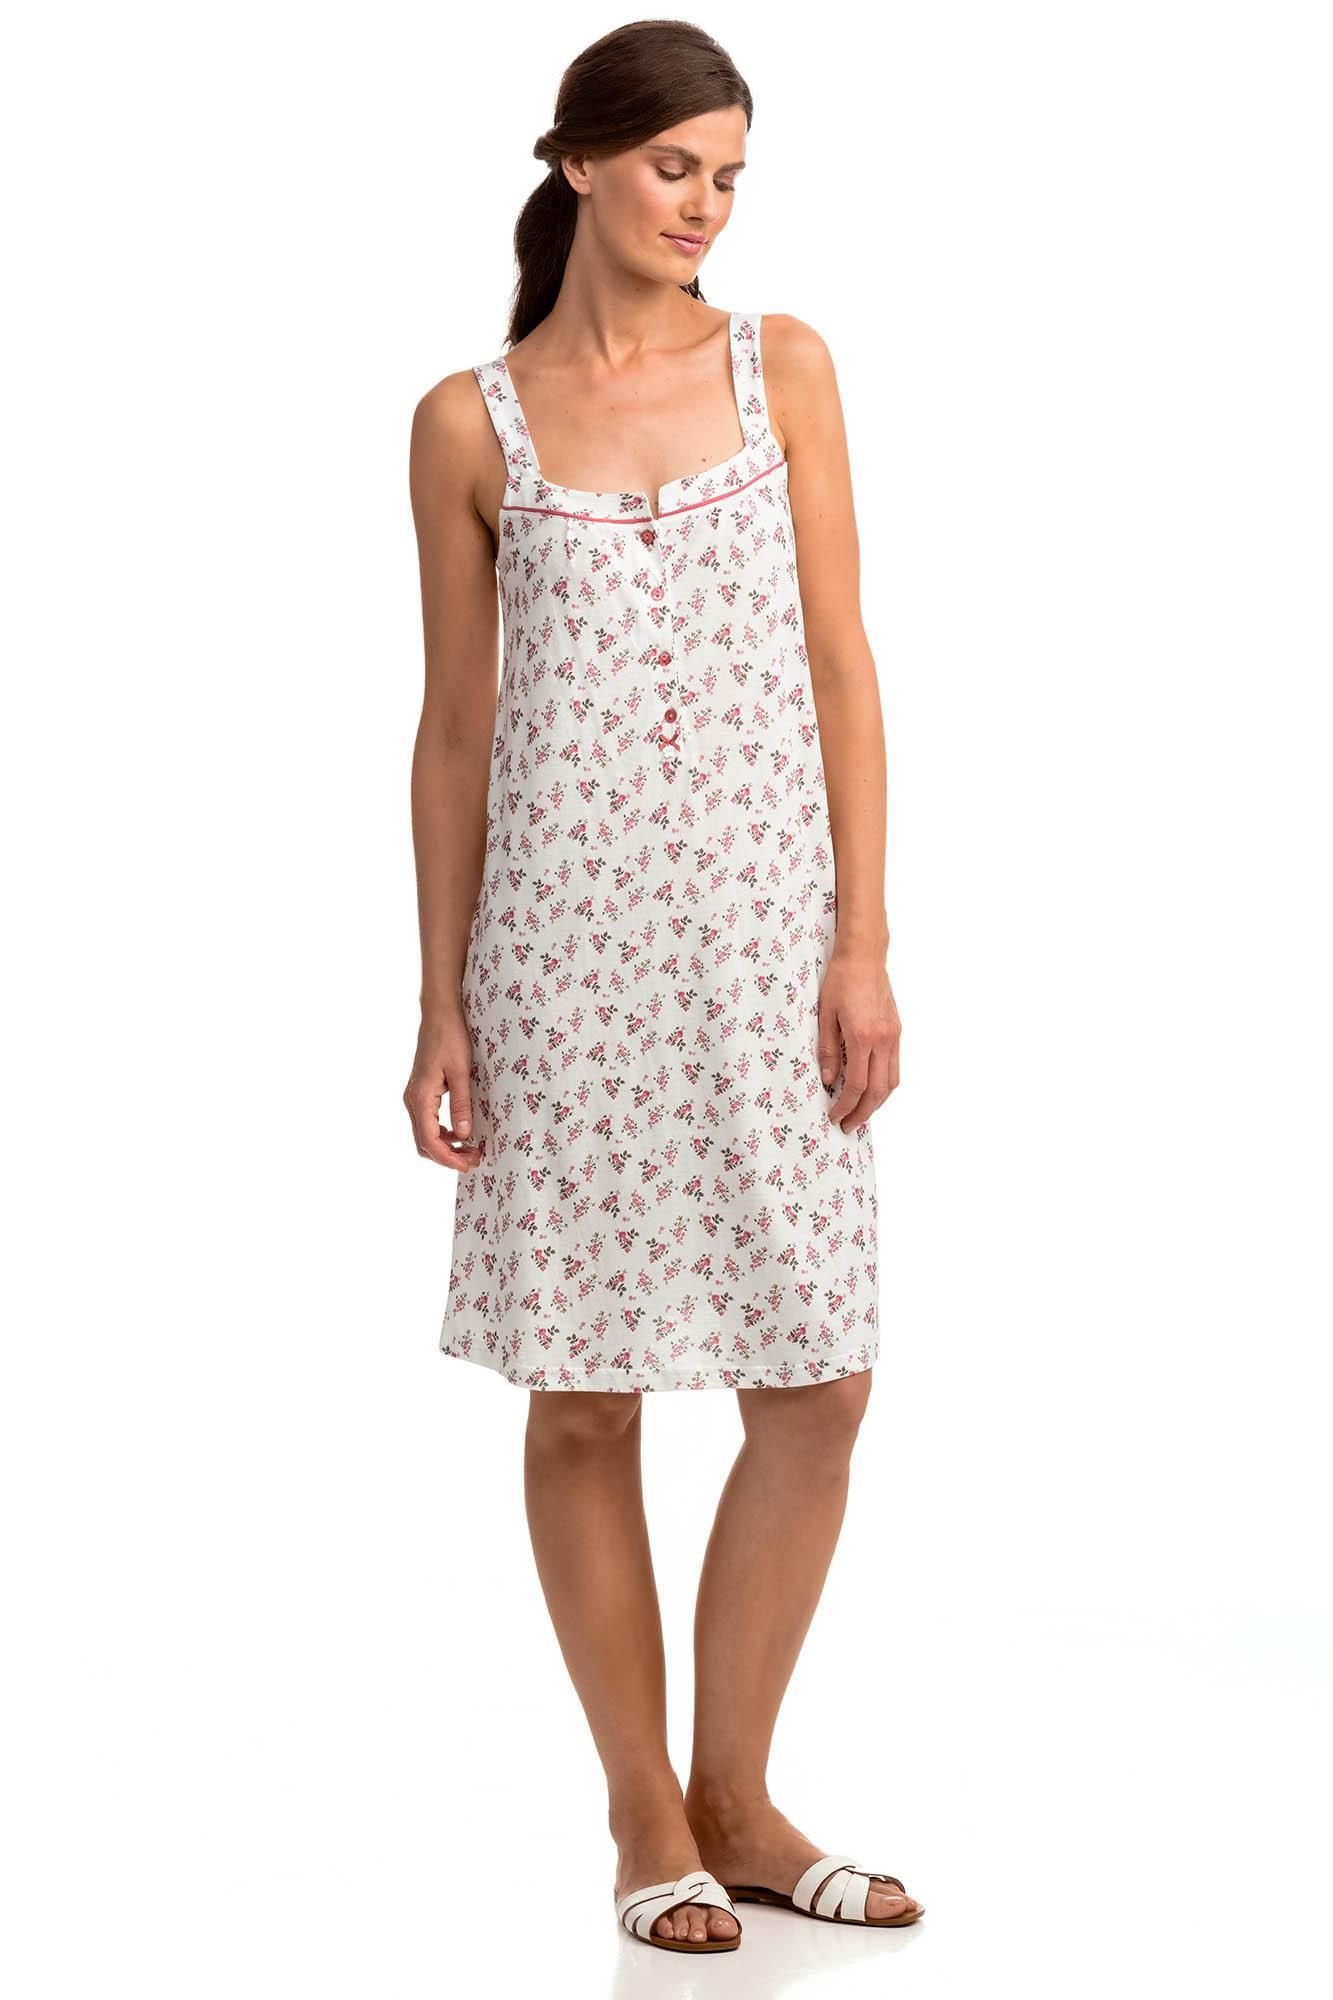 Sleeveless Floral Nightgown with Buttons